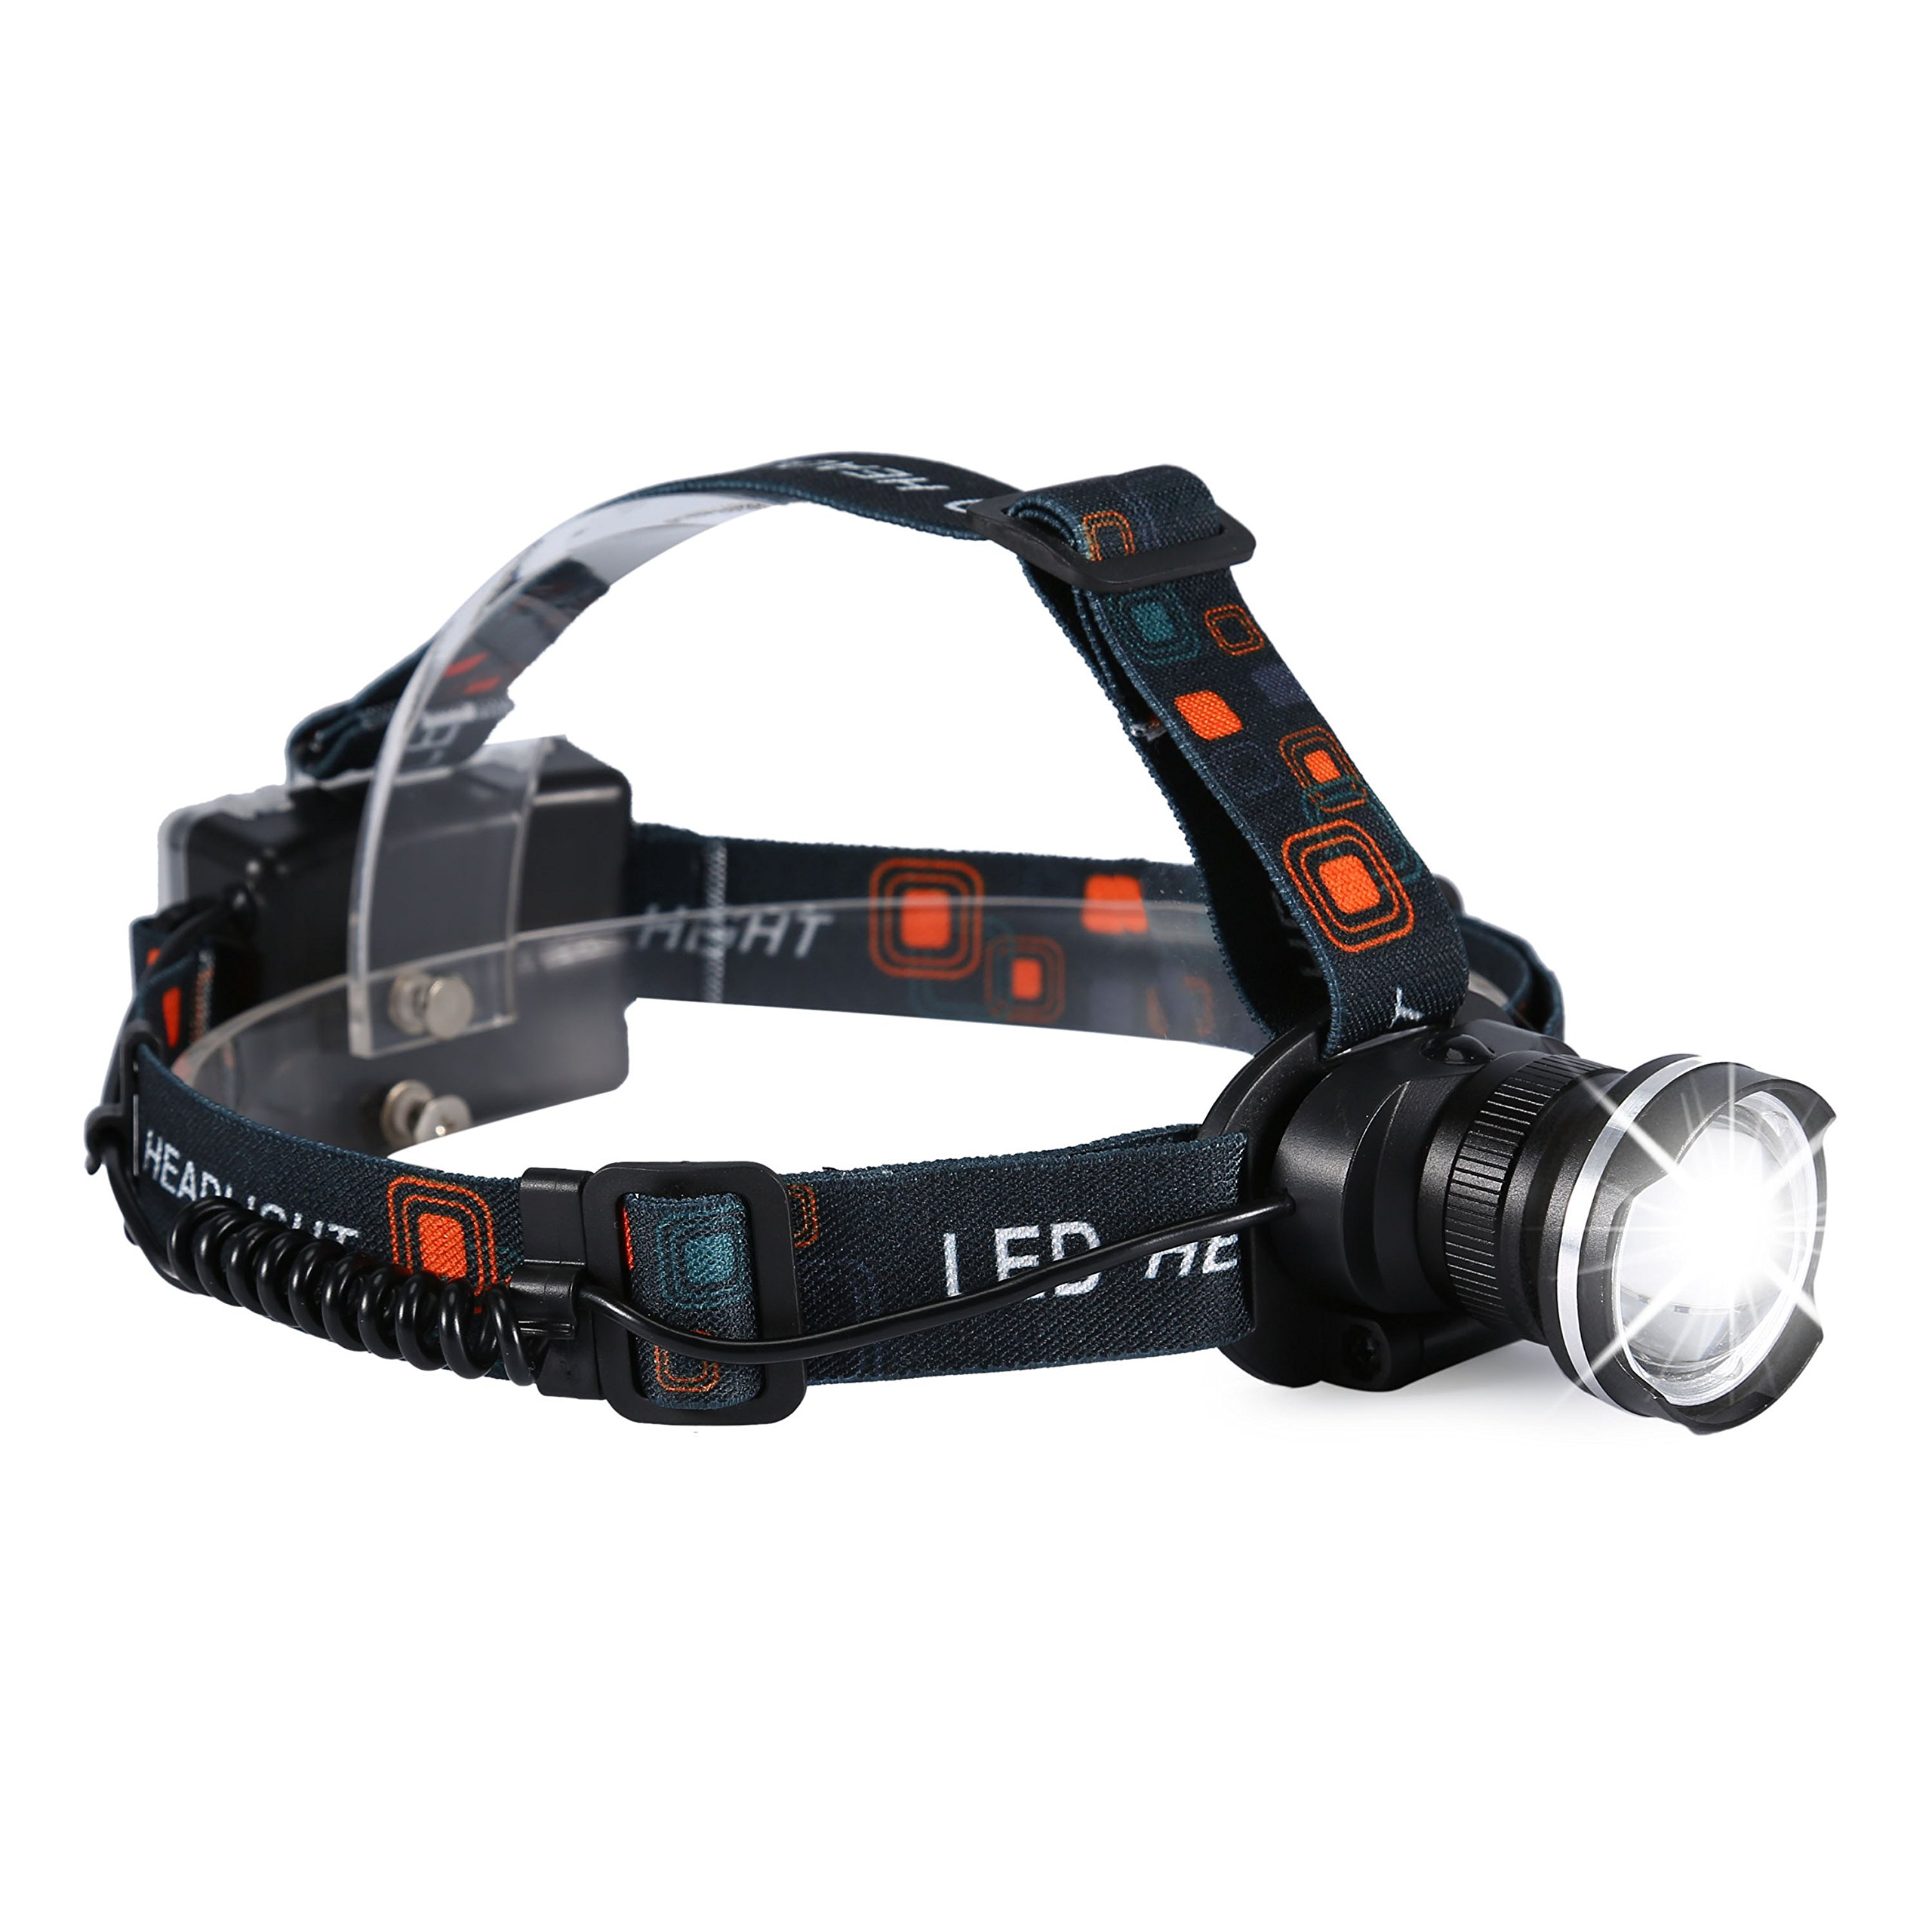 Zoomable LED Headlight, 3 Mode Head Torch, 90º Adjustable Headlamp Flashlight for Camping, Hiking, Fishing, Running